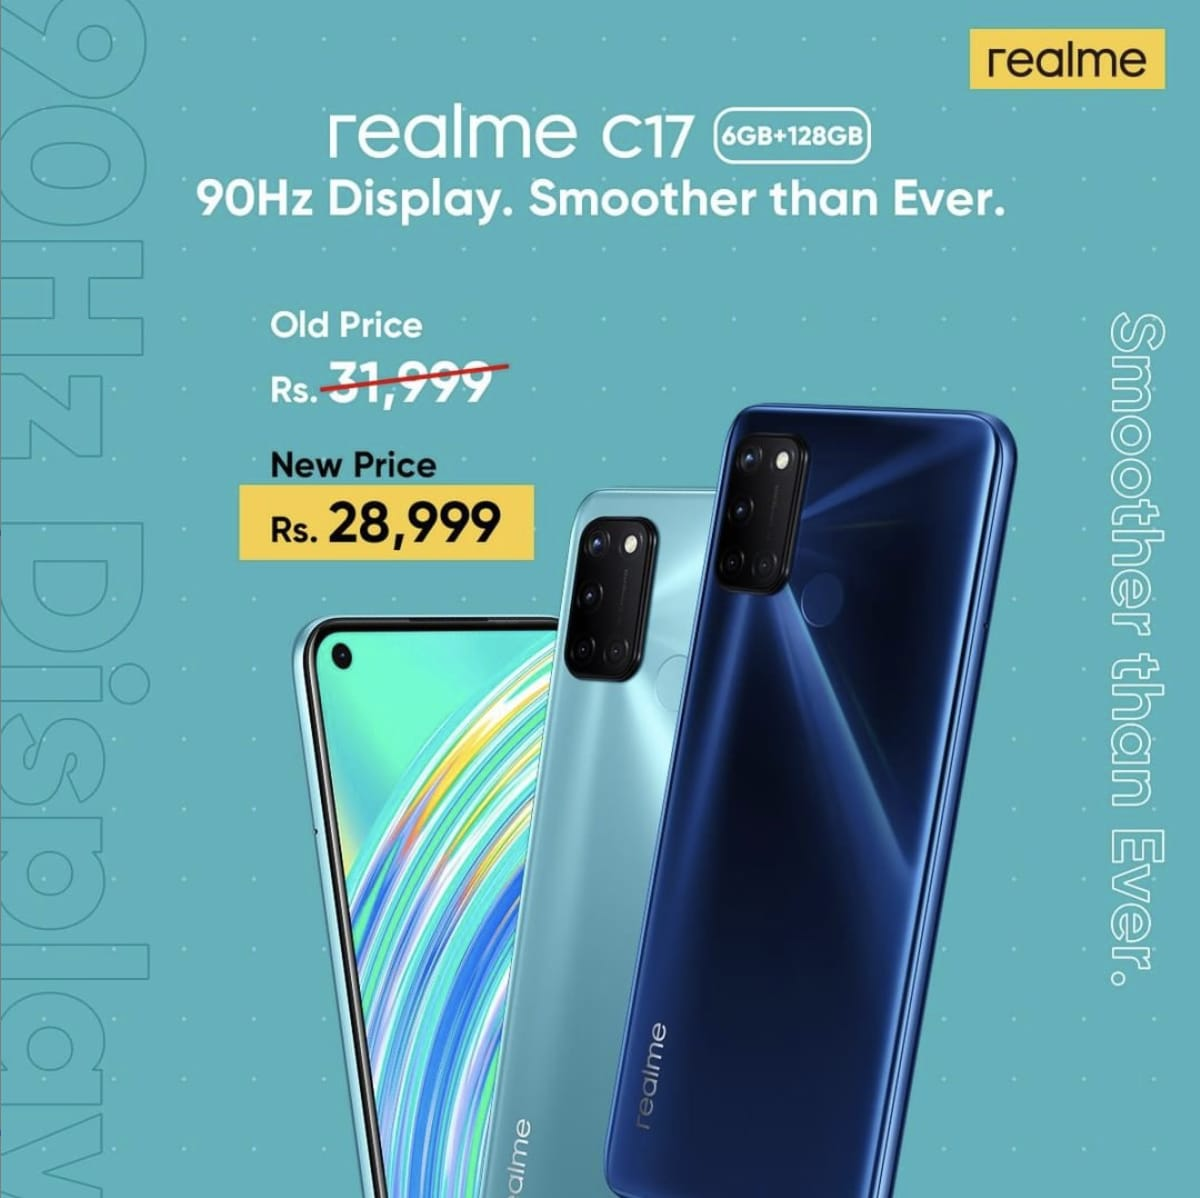 World's fastest growing smartphone brand realme just crossed 50 Million units milestone; now offering C17 for PKR 28,999 only